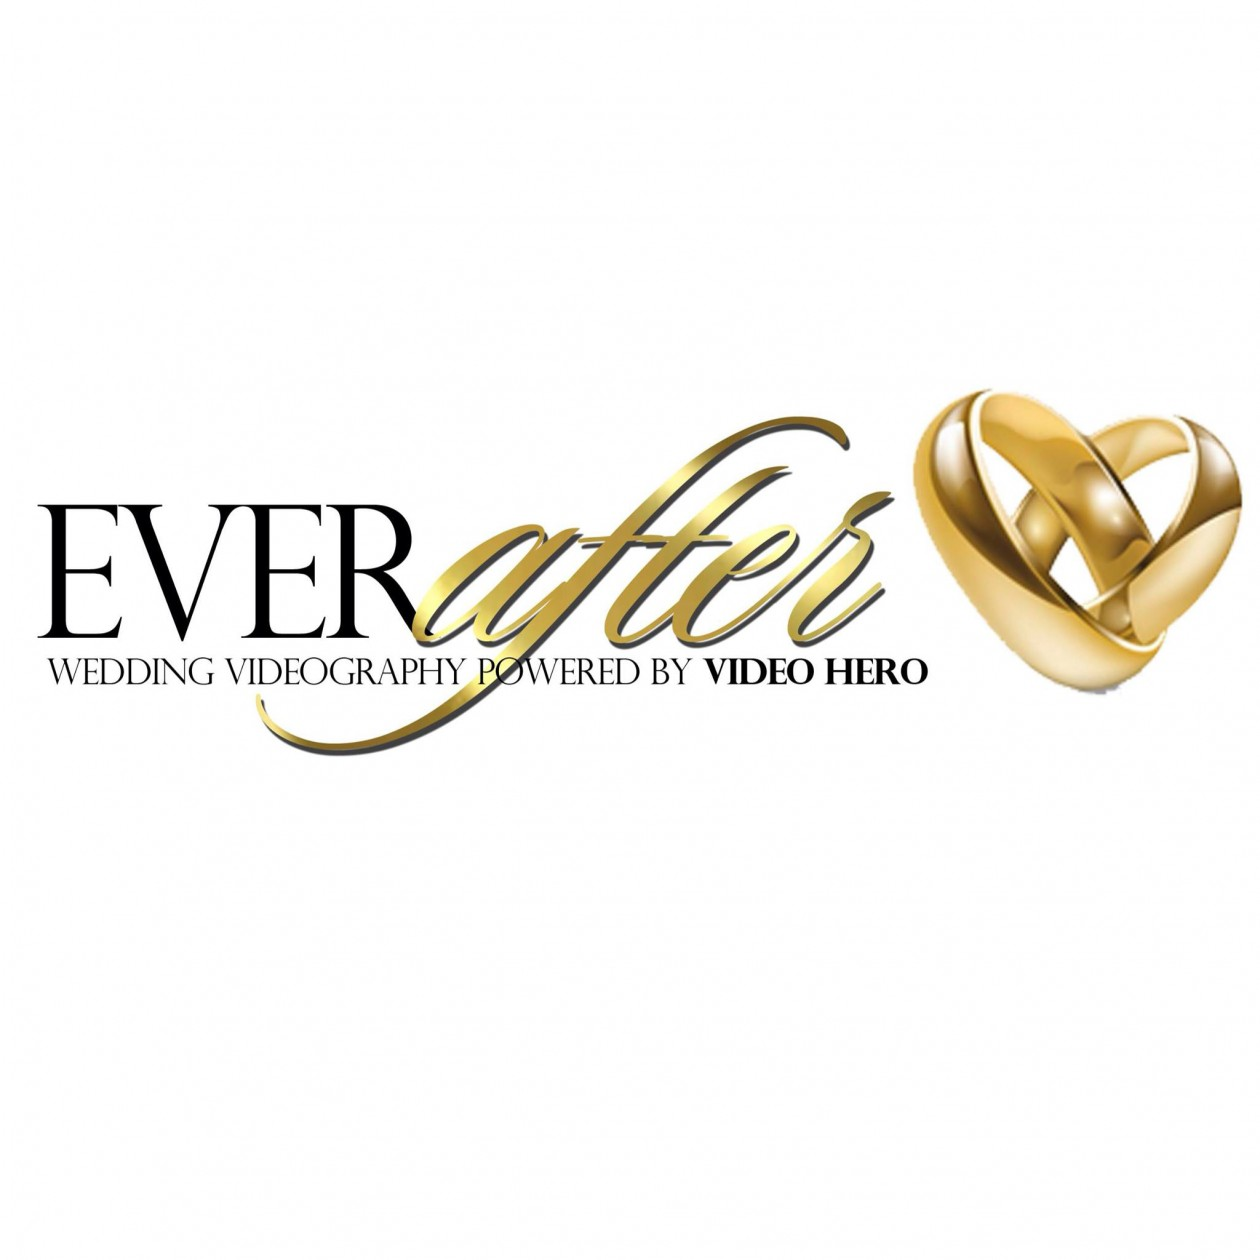 Ever After Wedding Videography